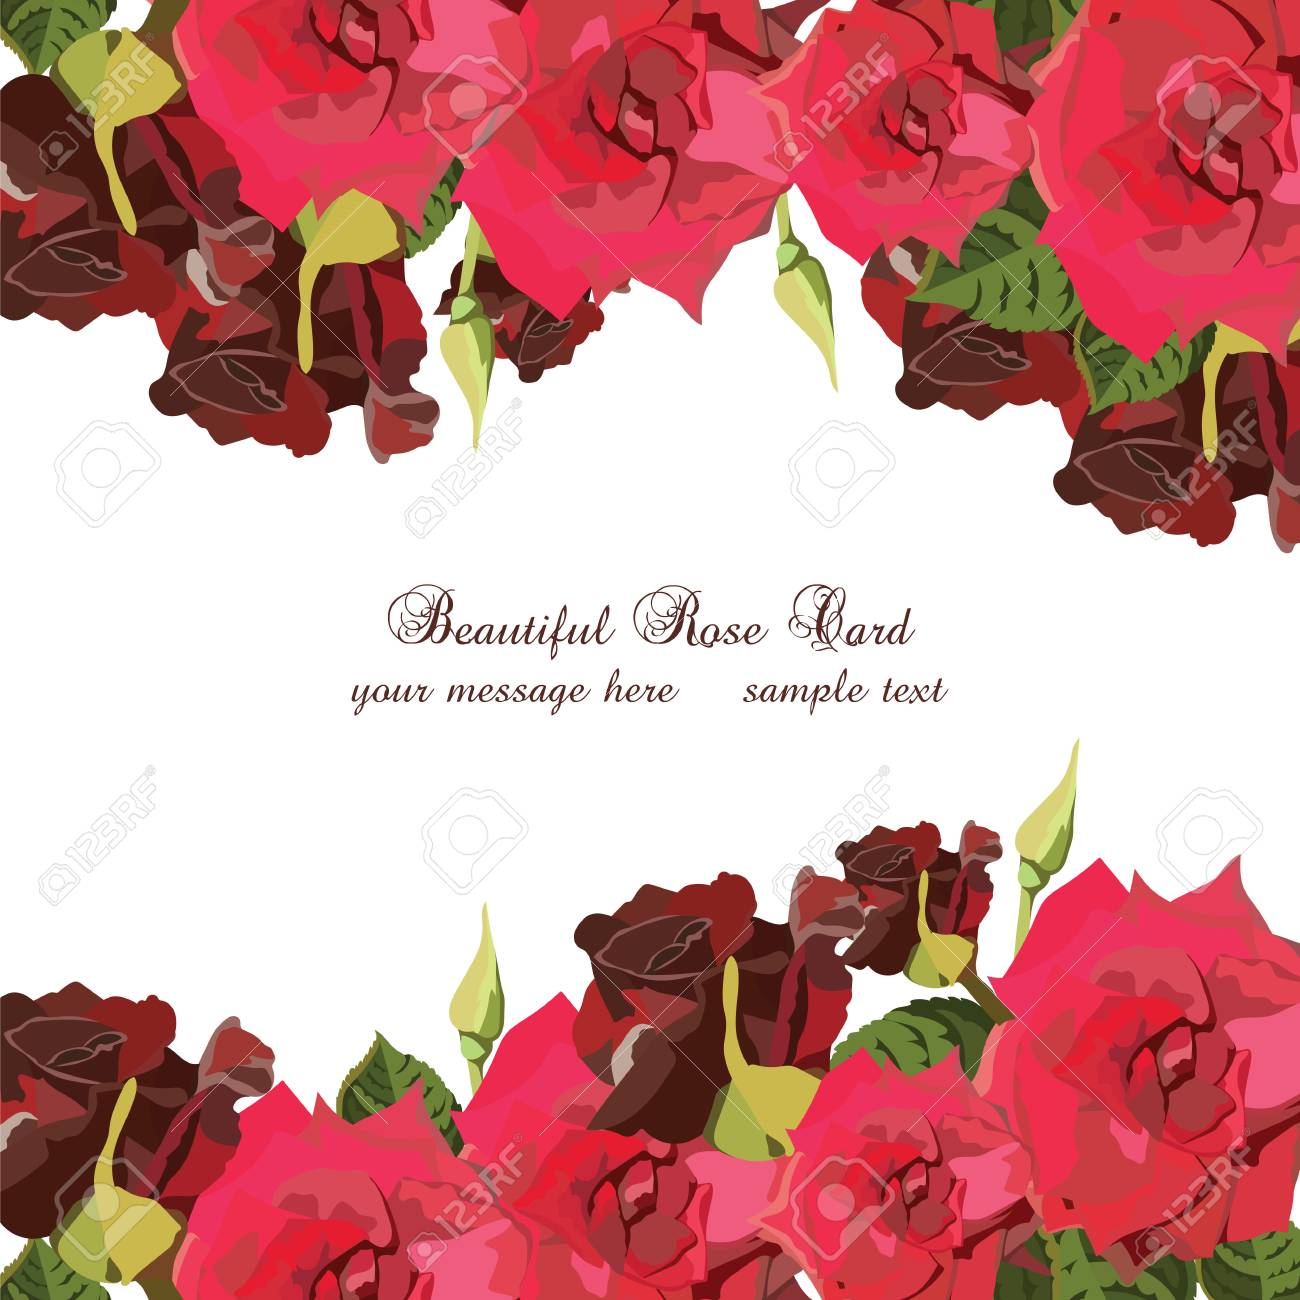 Watercolor Red Roses Card Vector Vintage Floral Border For Greeting